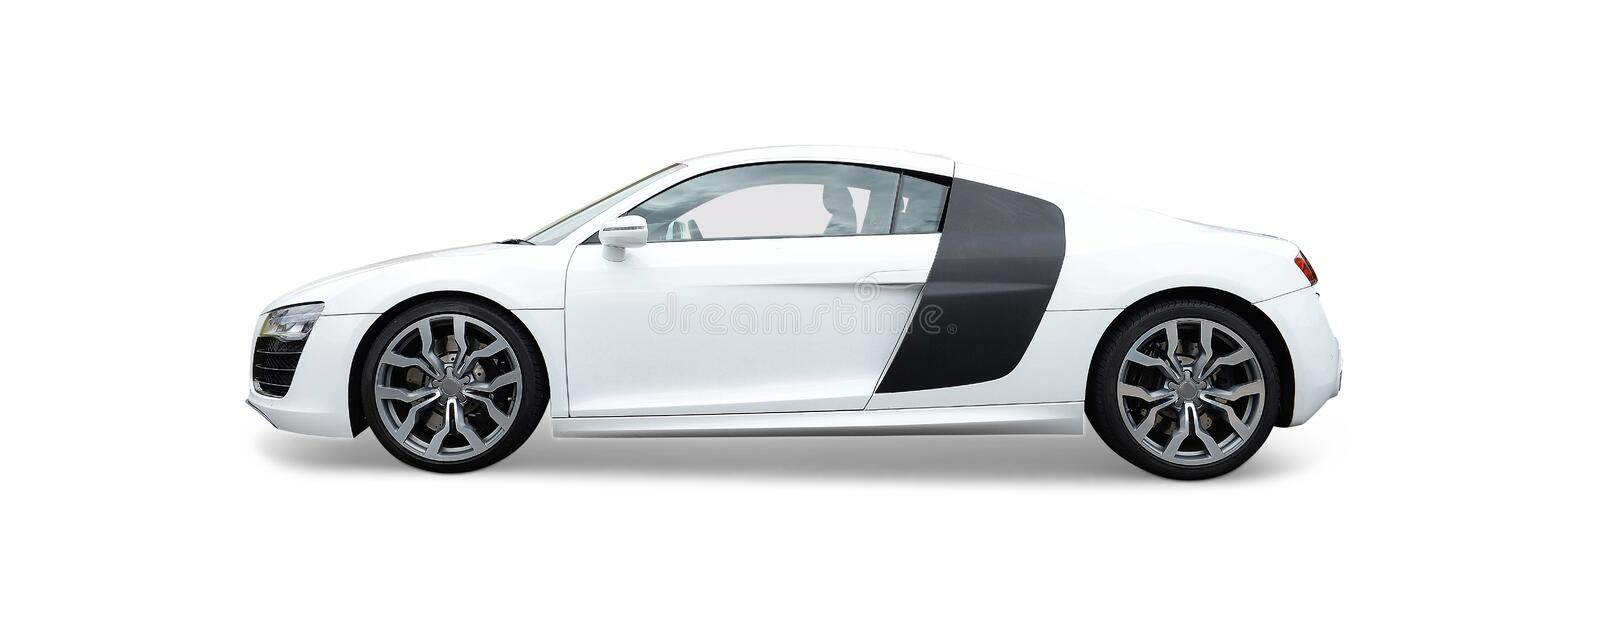 Audi R8 Sports car. White Audi R8 Luxury high performance sports car with alloy wheels and electric hood (top), white background royalty free stock image